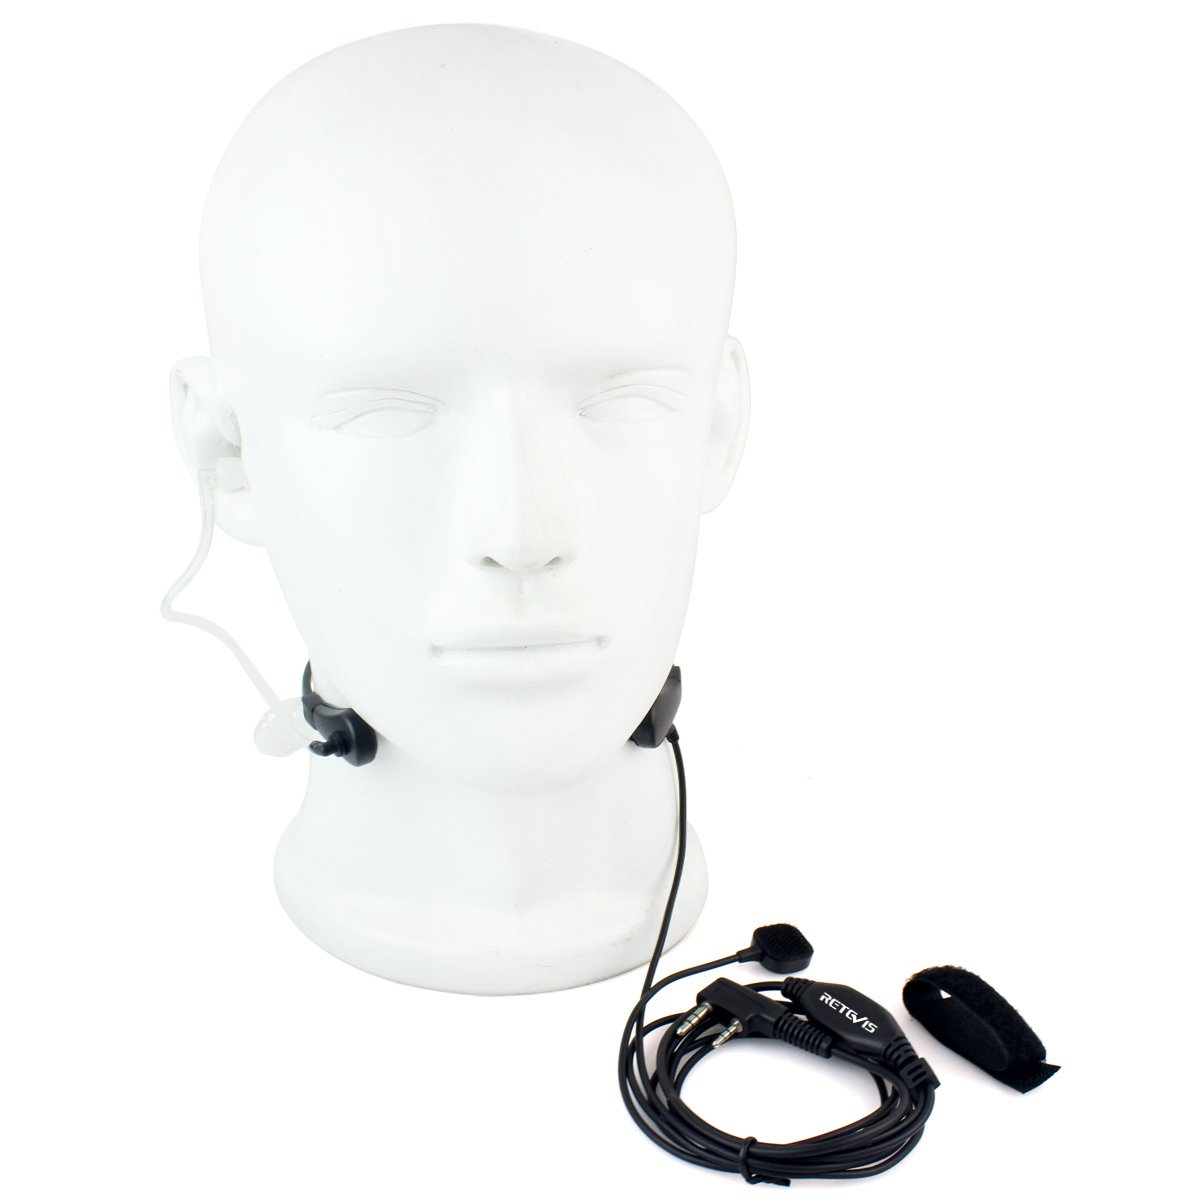 Retevis 2 Pin Throat Mic Covert Acoustic Tube Earpiece with PTT Compatible Kenwood Radios Baofeng UV-5R BF-888S Retevis H-777 RT22 RT21 RT7 RT27 TYT Walkie Talkies USC9007A 1 Pack